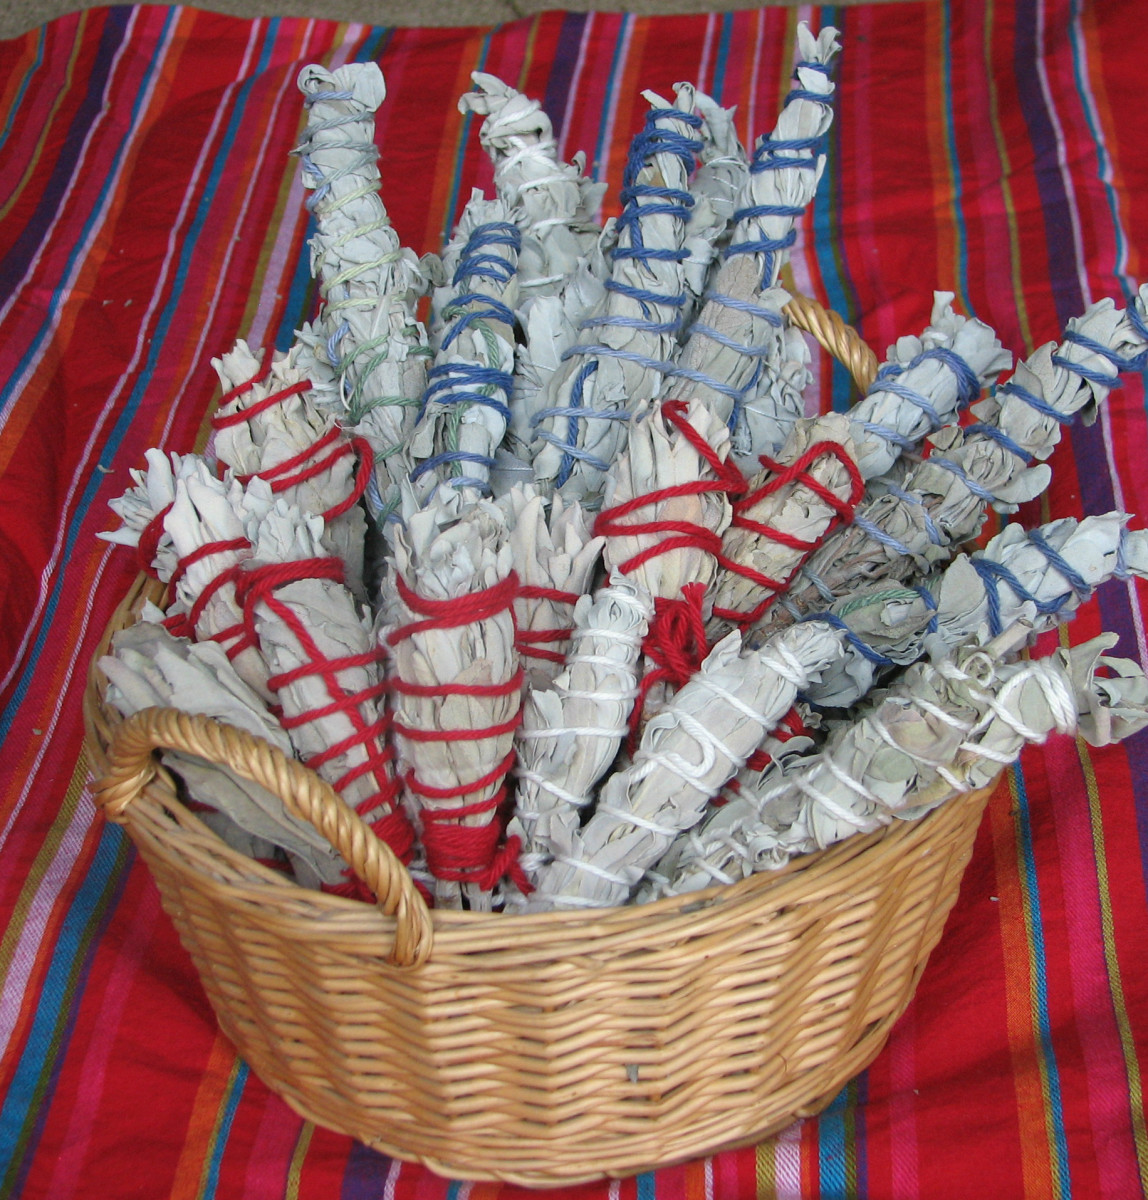 Basket of White Sage Smudge Sticks